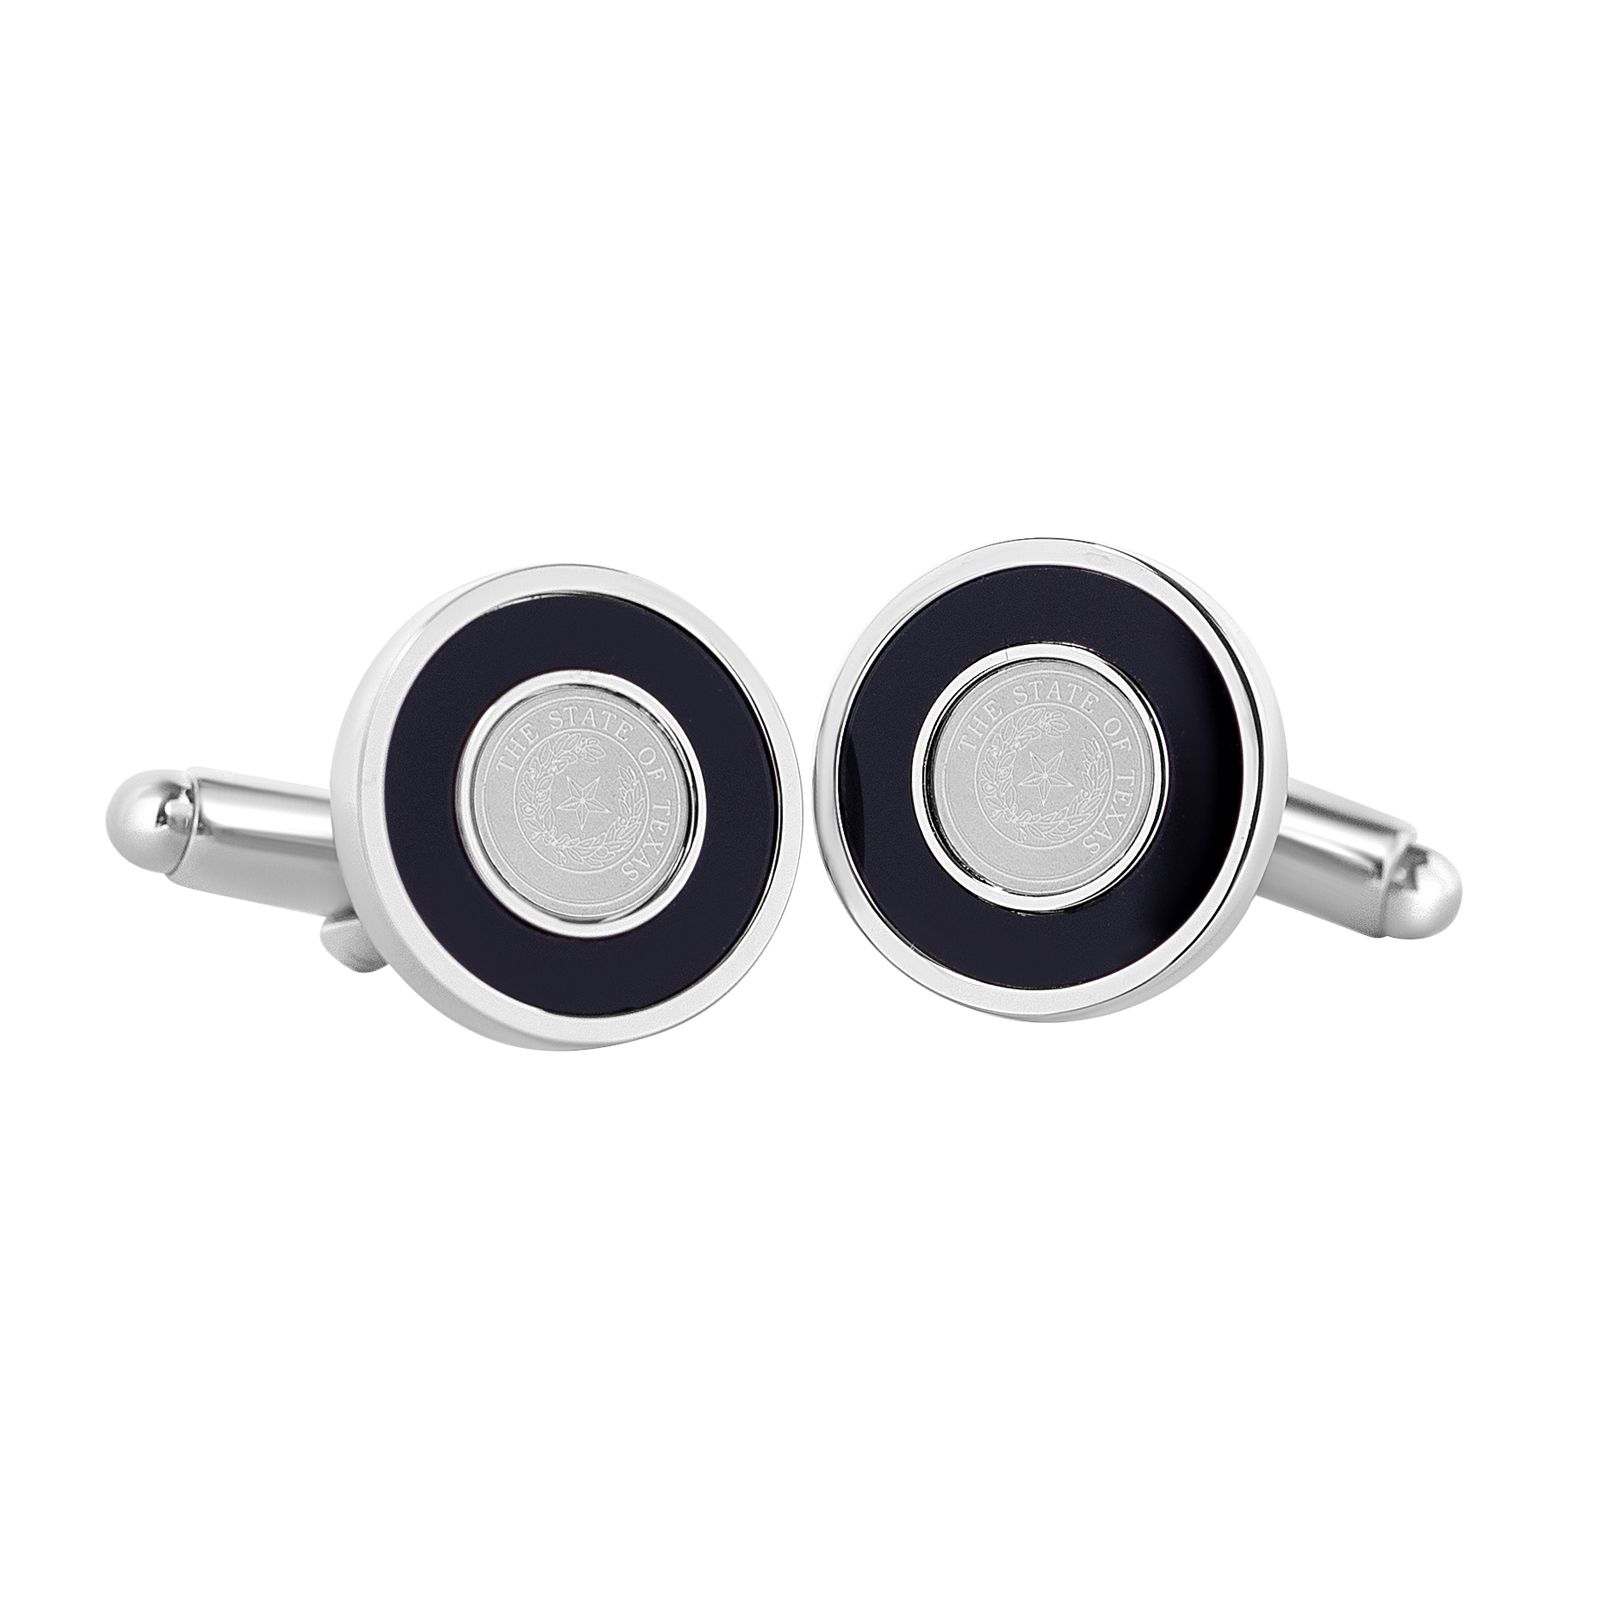 Texas State Seal Silver Tone Cuff Links